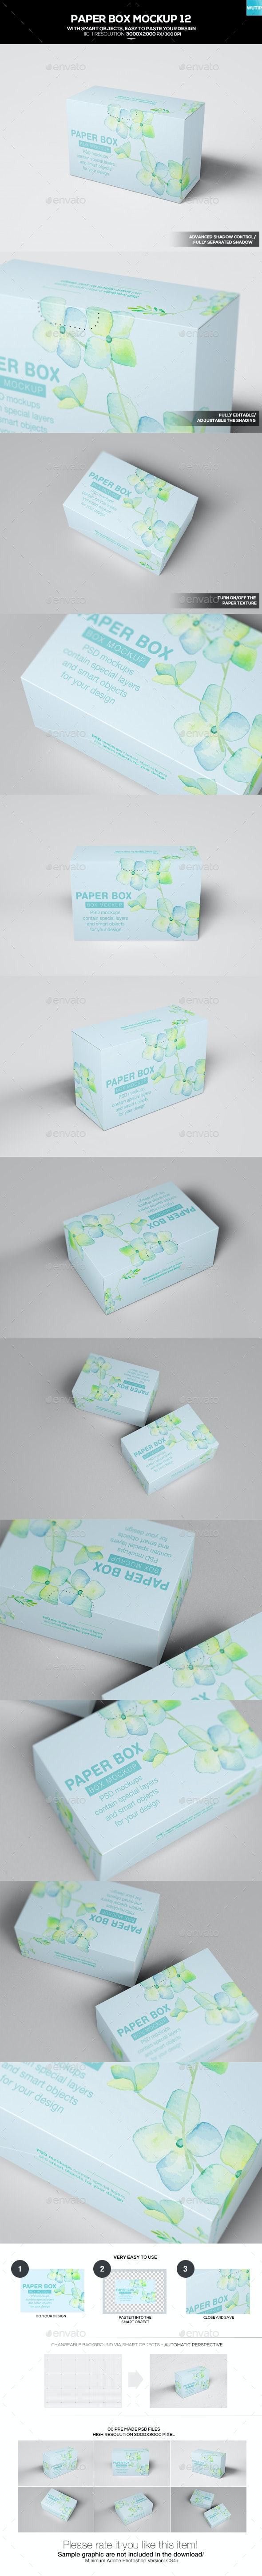 Paper Box Mockup 12 - Miscellaneous Packaging